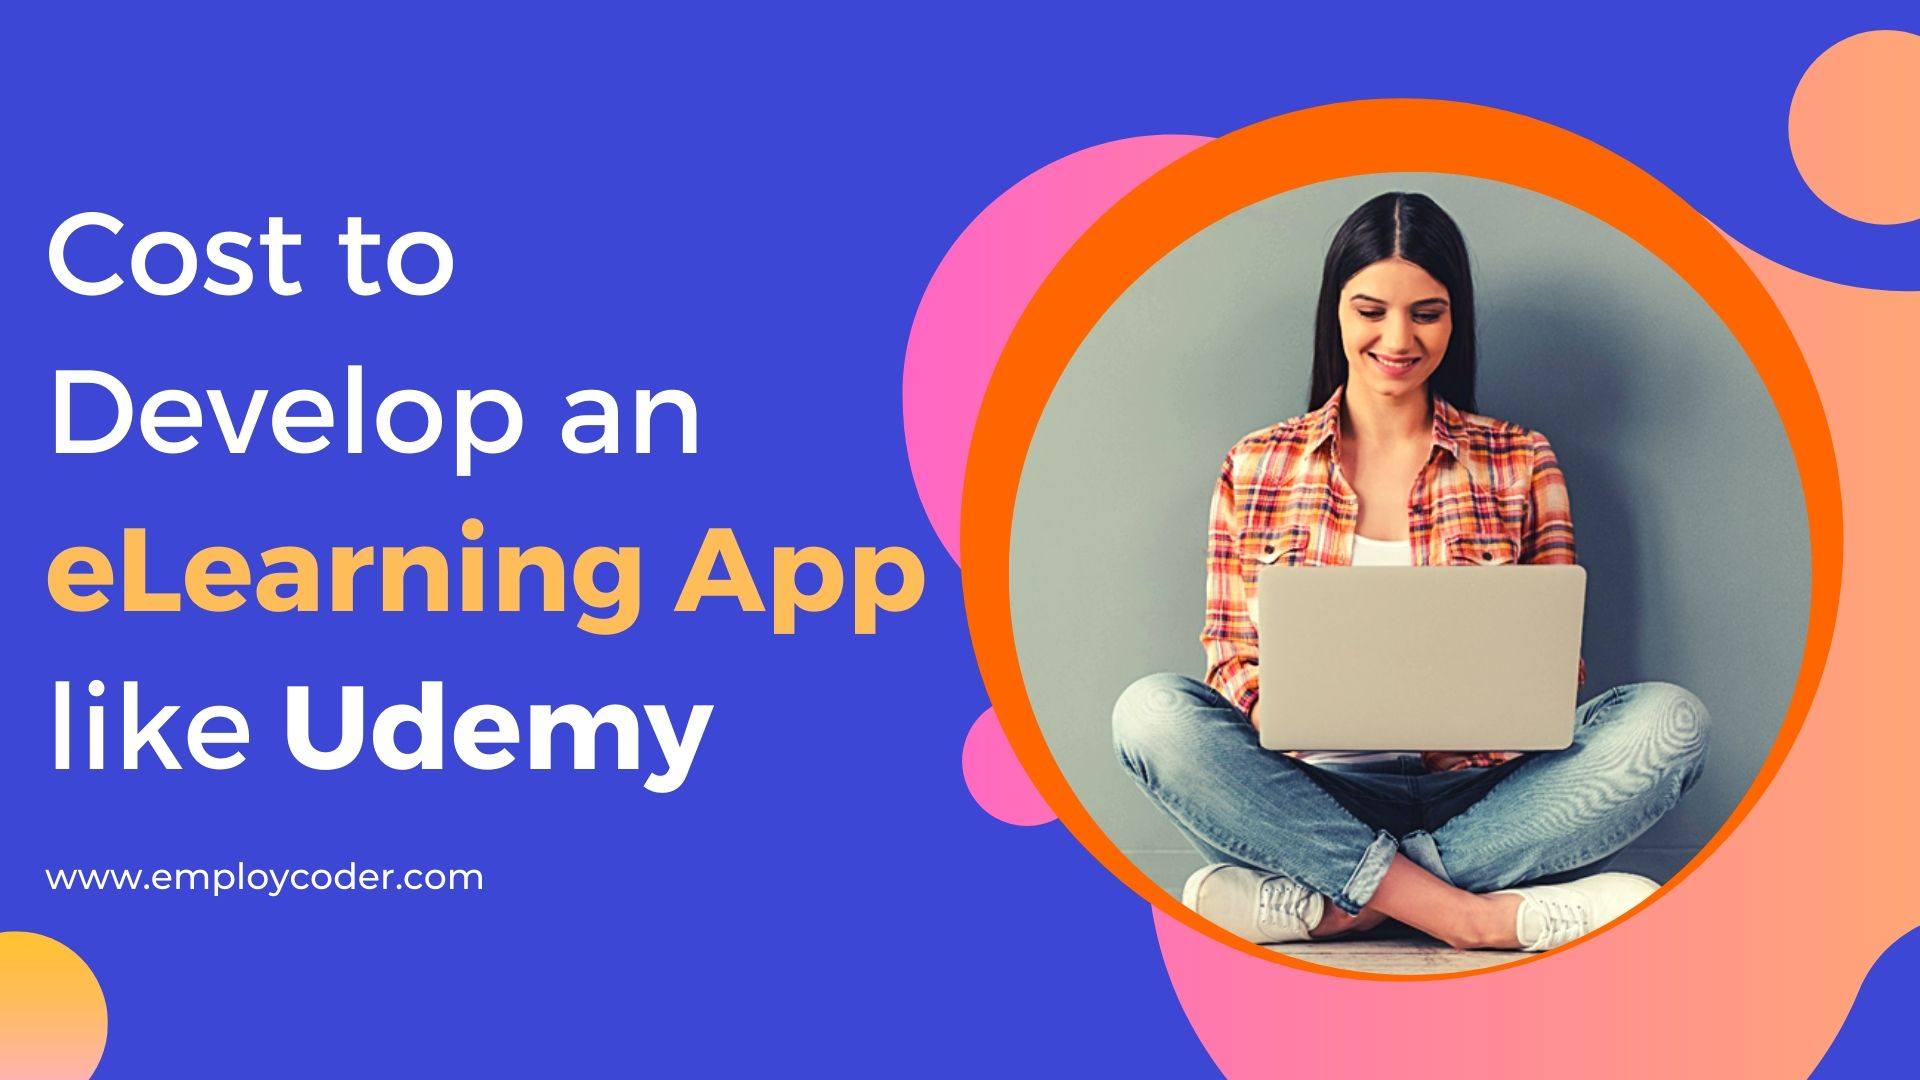 How Much it Would Cost To Develop an eLearning App Like Udemy?